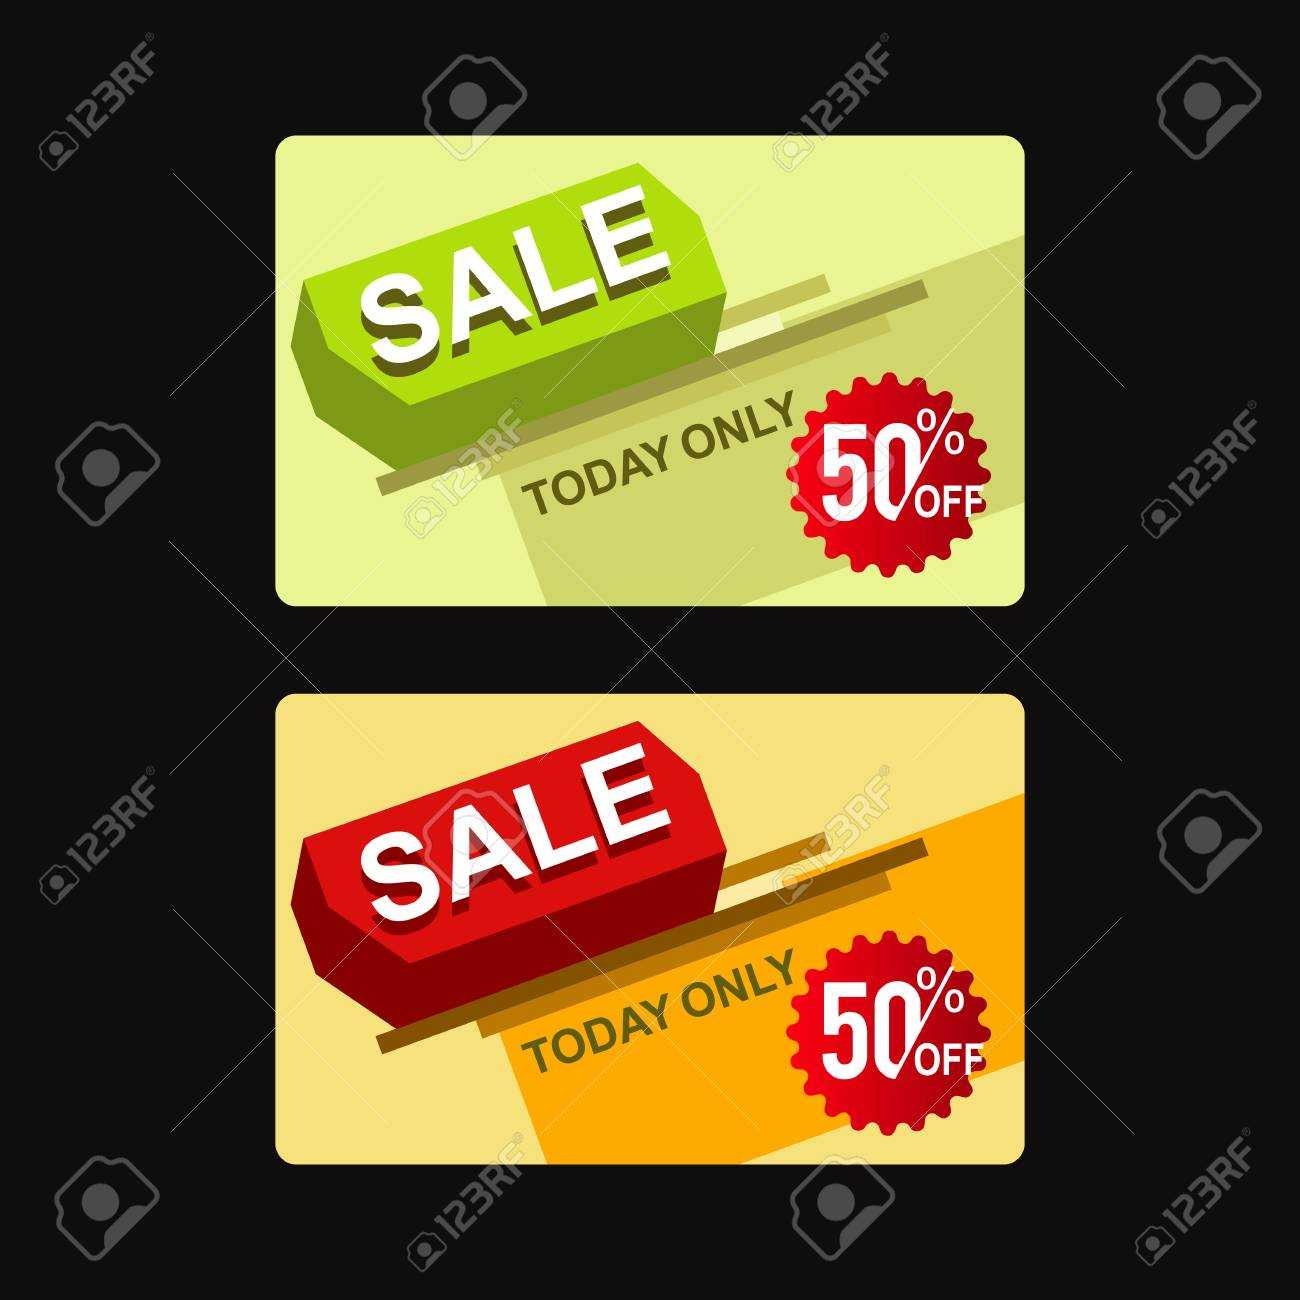 Credit Card Templates For Sale - Major.magdalene-Project for Credit Card Templates For Sale